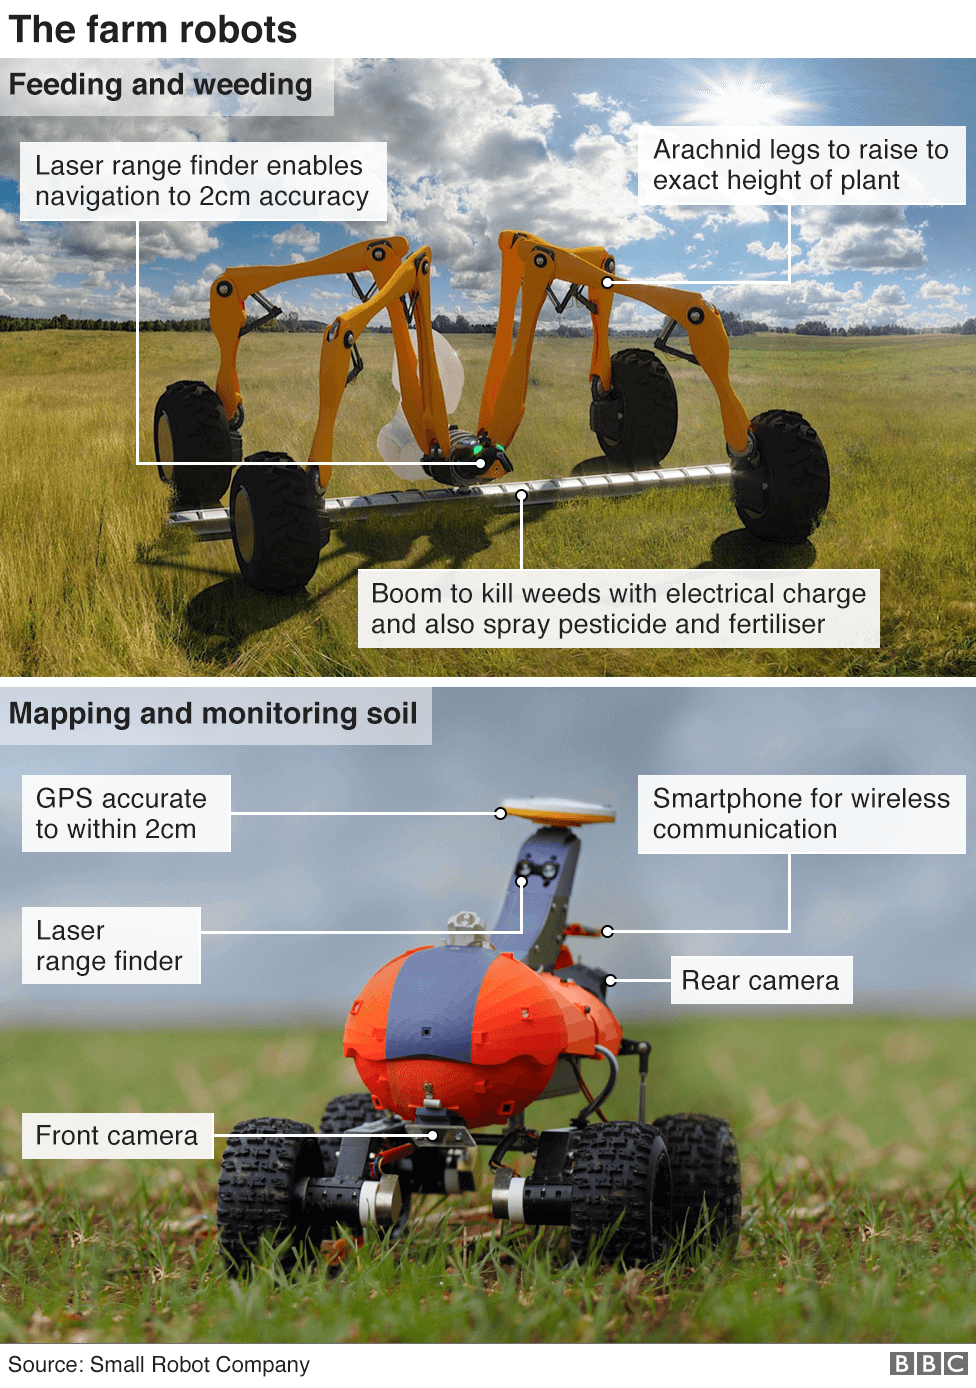 Annotated picture of robots used in farming